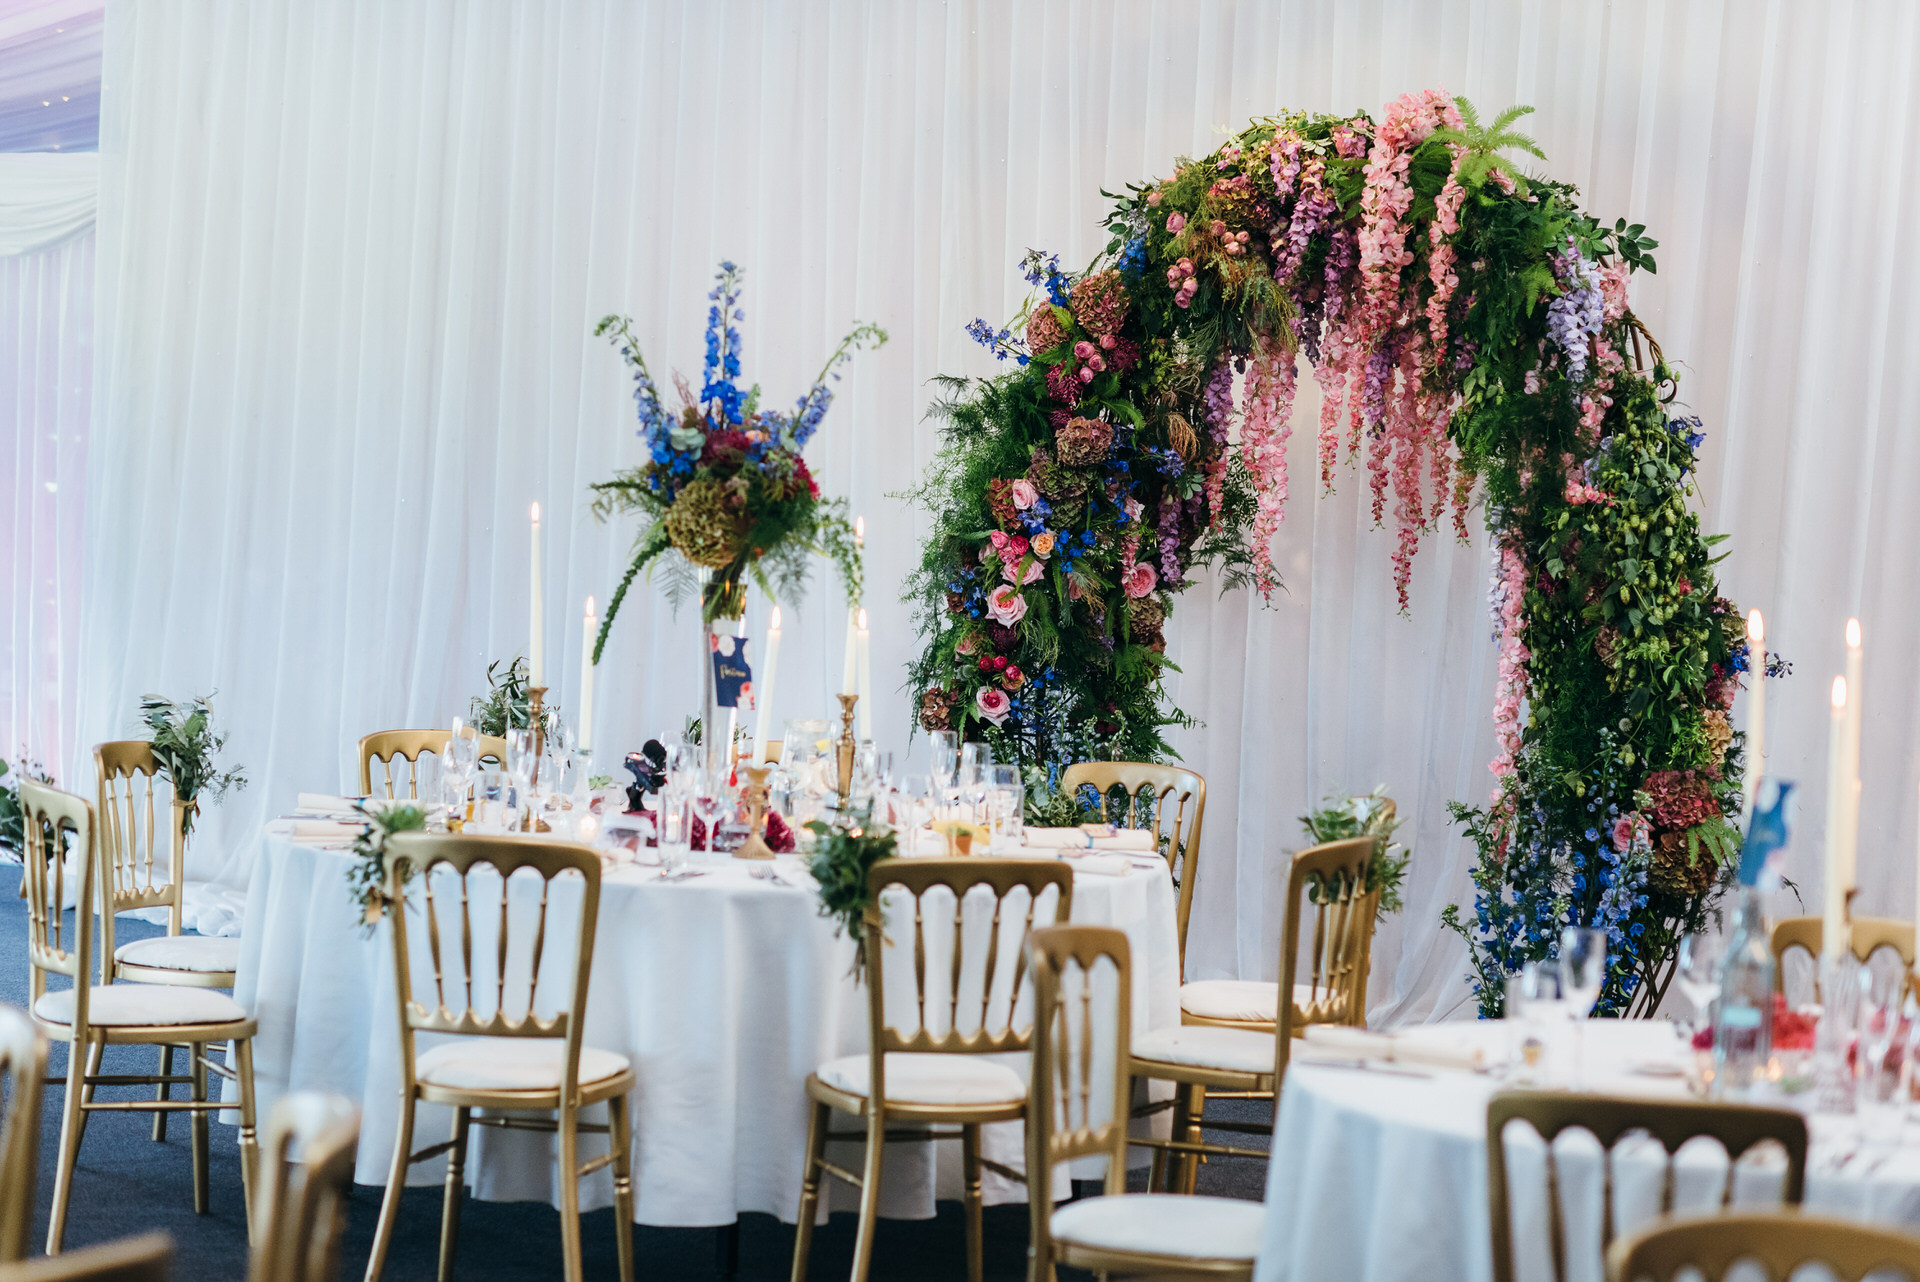 Floral arch at wedding